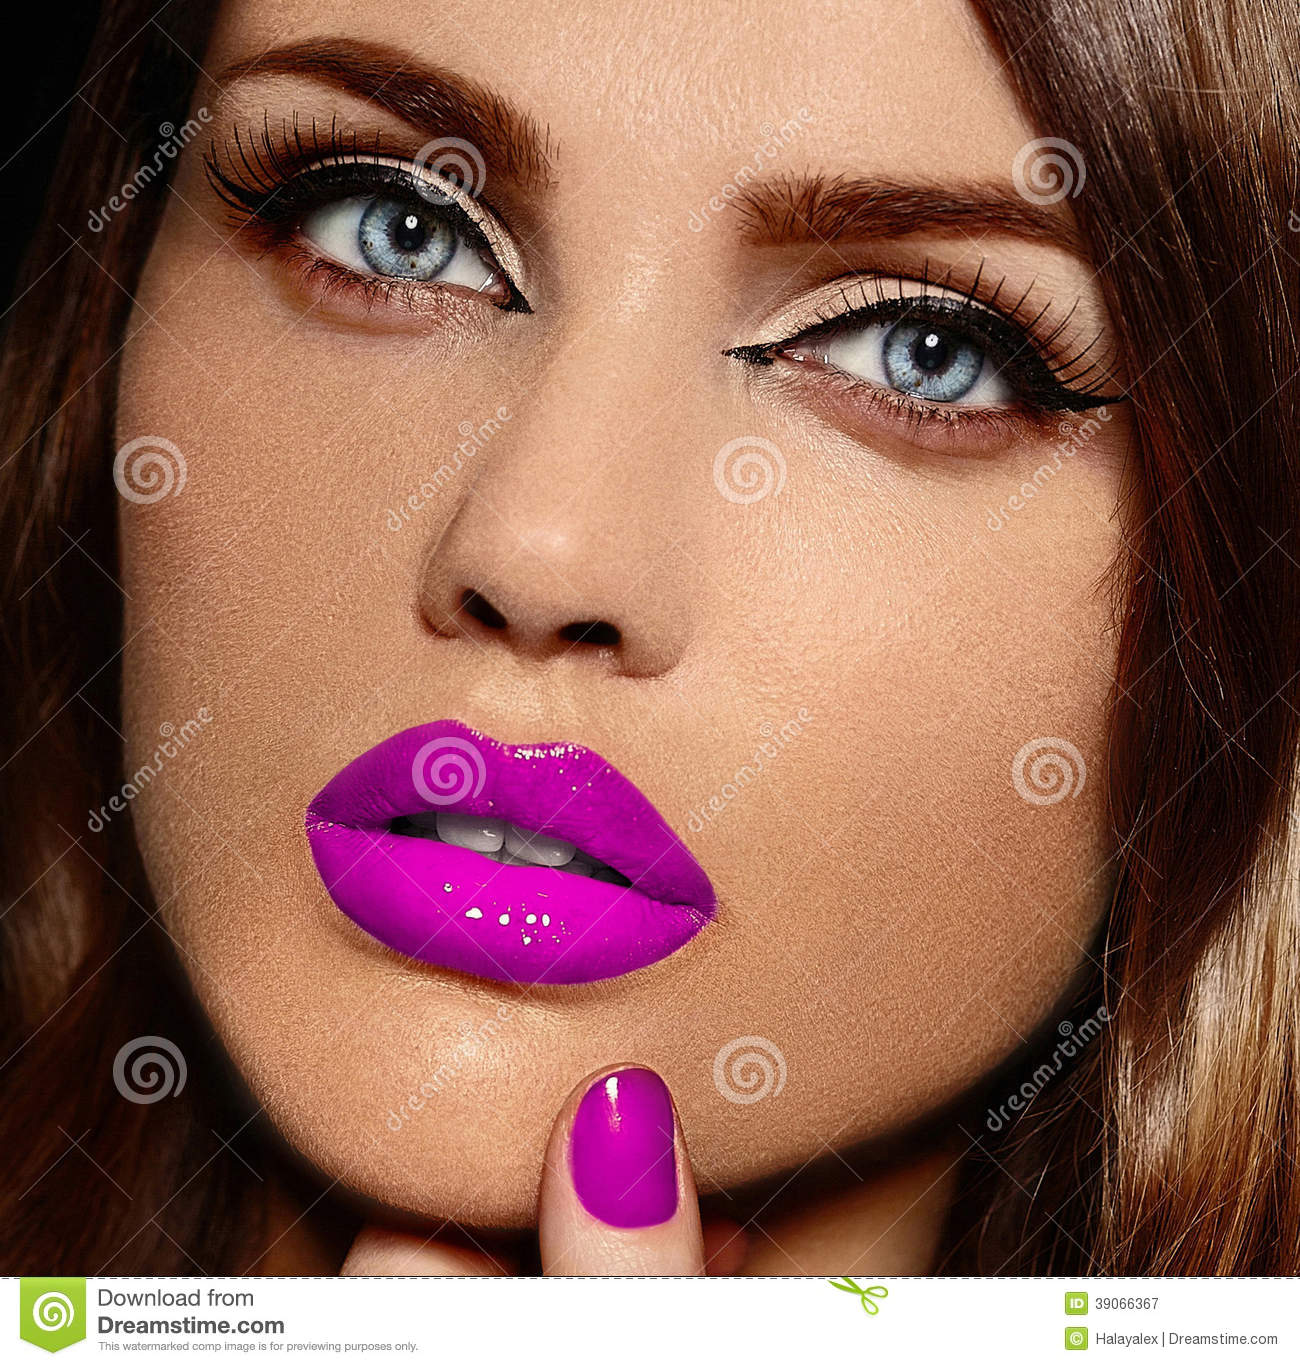 712ae7b5f98 High fashion look.glamor closeup portrait of beautiful stylish Caucasian  young woman model with bright makeup